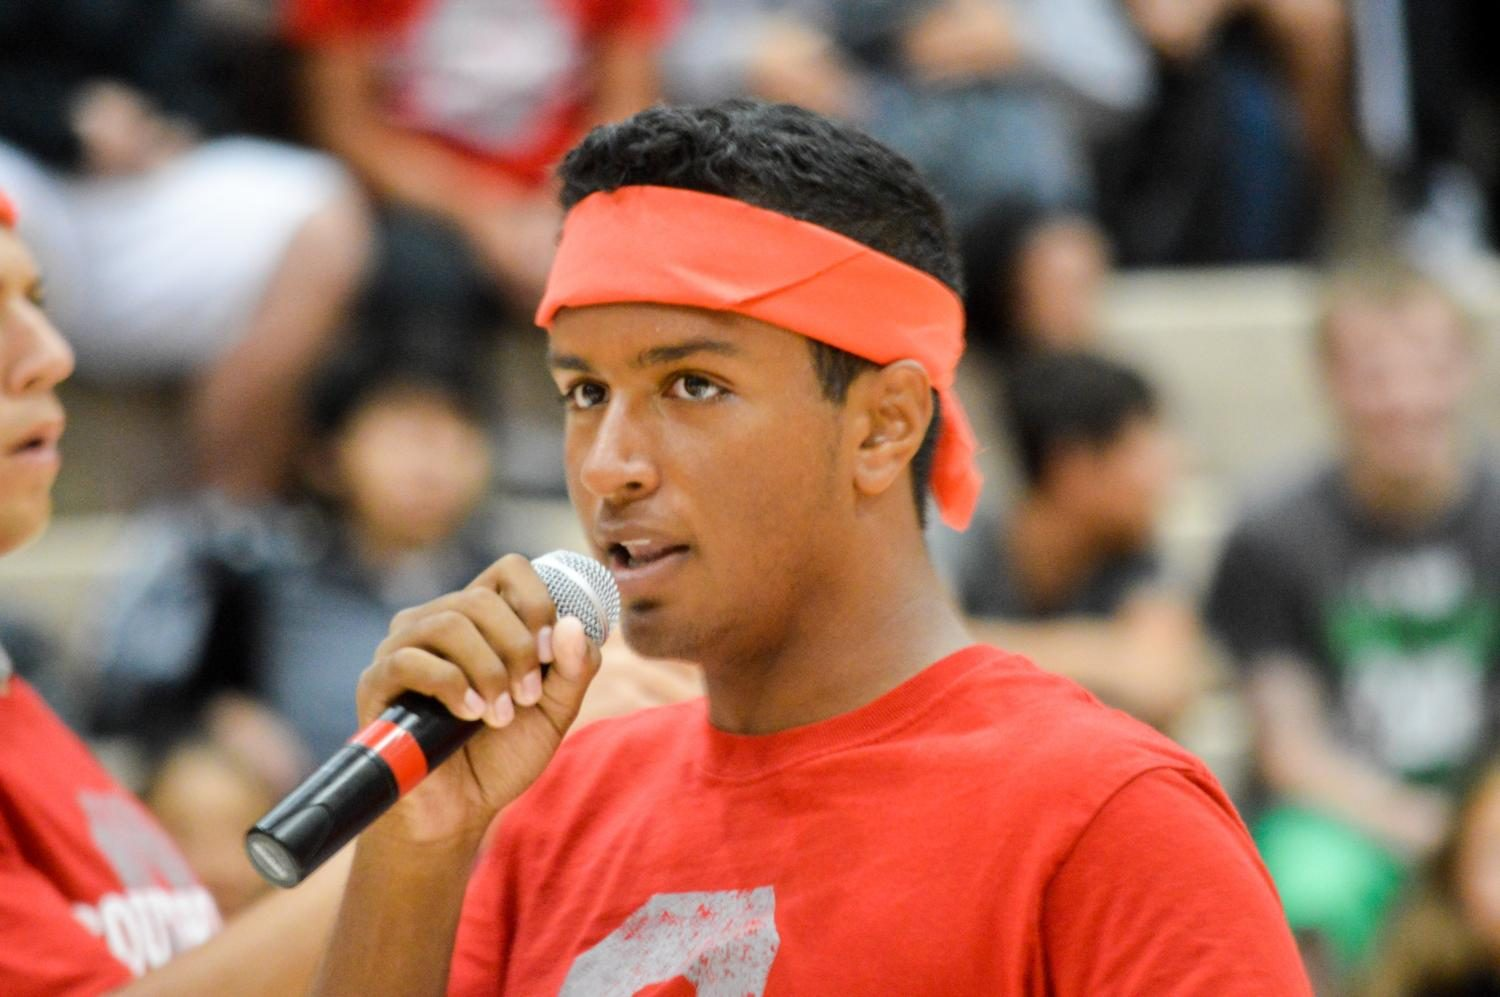 Senior+and+booster+club+officer+Seejay+Patel+speaks+through+the+microphone+to+the+student+audience+at+the+year%27s+first+pep+session.+